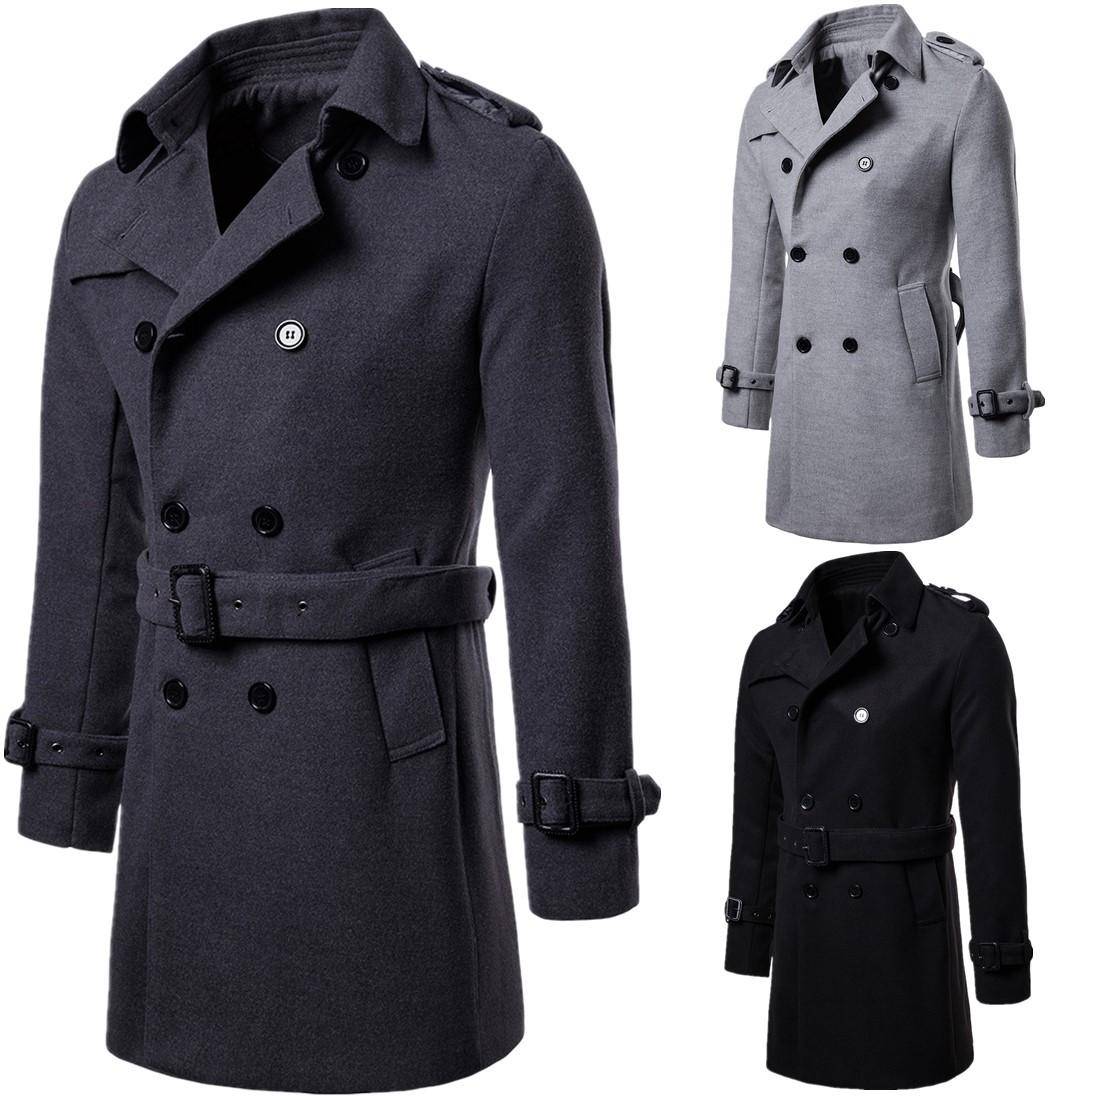 3af98c203c5d8 Men Casual Trench Coat Mens Long Winter Coats Hot New Fashion Slim Fit Mens  Man Wool UK Style Outwear Overcoat Outerwear J181178 Men Casual Trench Coat  Mens ...